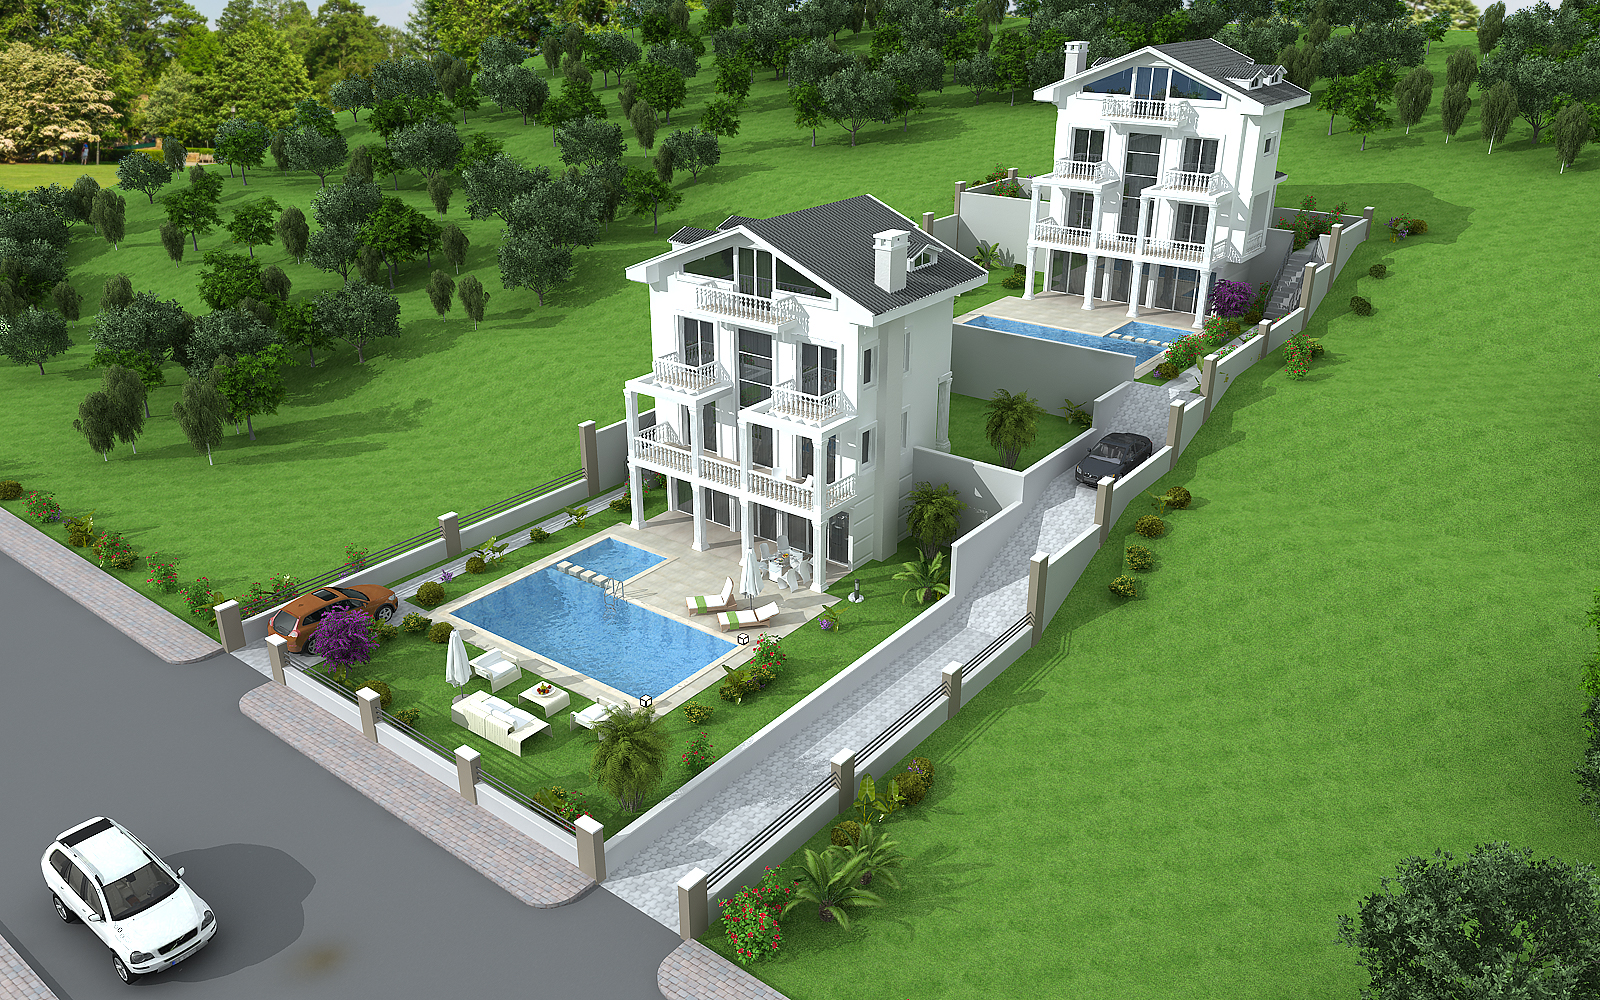 Detached Villa with Pool for Sale in Fethiye Ovacık Turkey